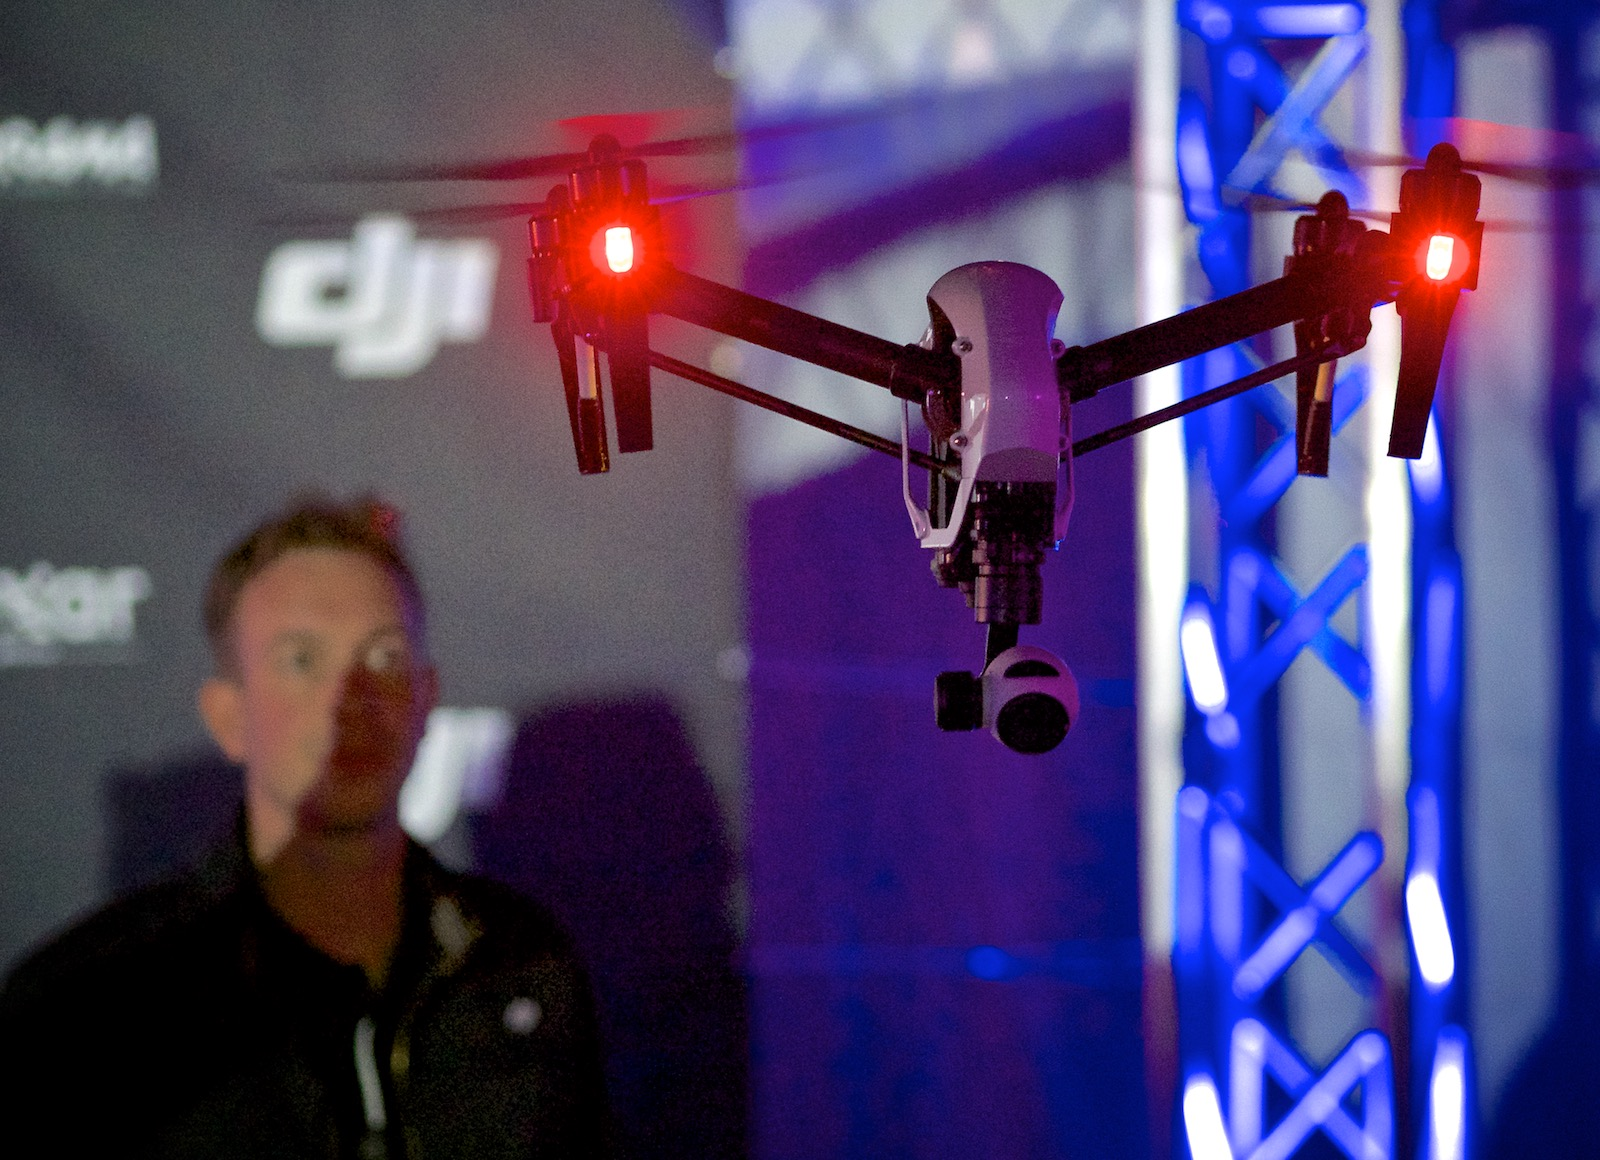 http://thedigitalstory.com/2014/11/18/dealing-with-drones.jpg